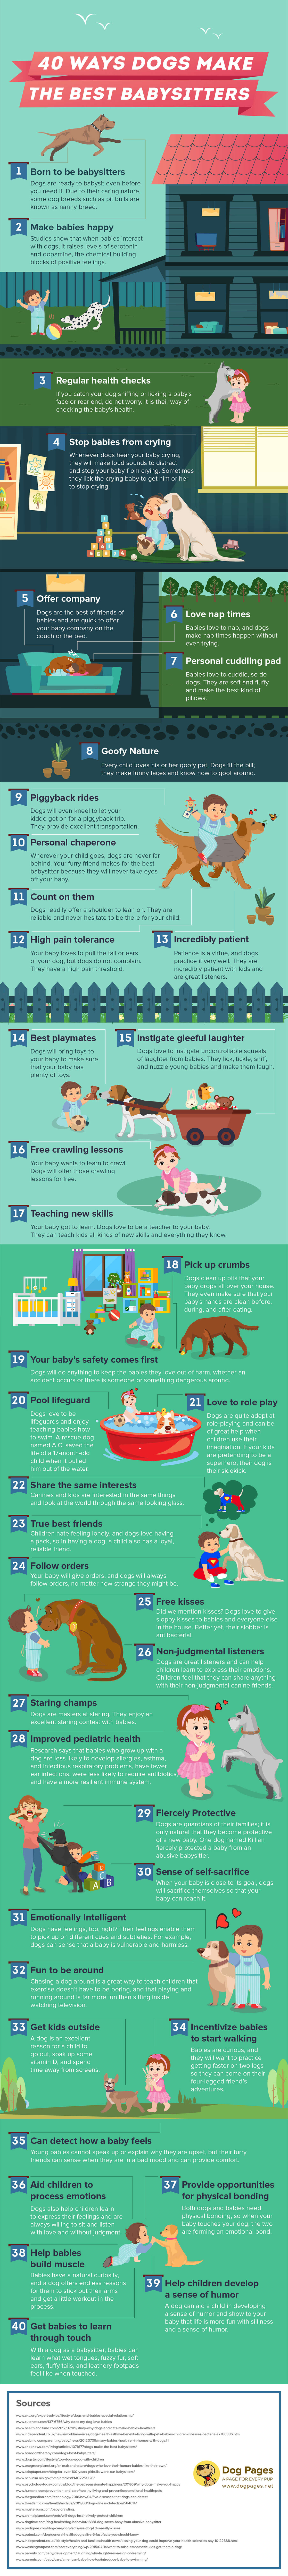 40-Ways-Dogs-Make-the-Best-Babysitters-Infographic-plaza